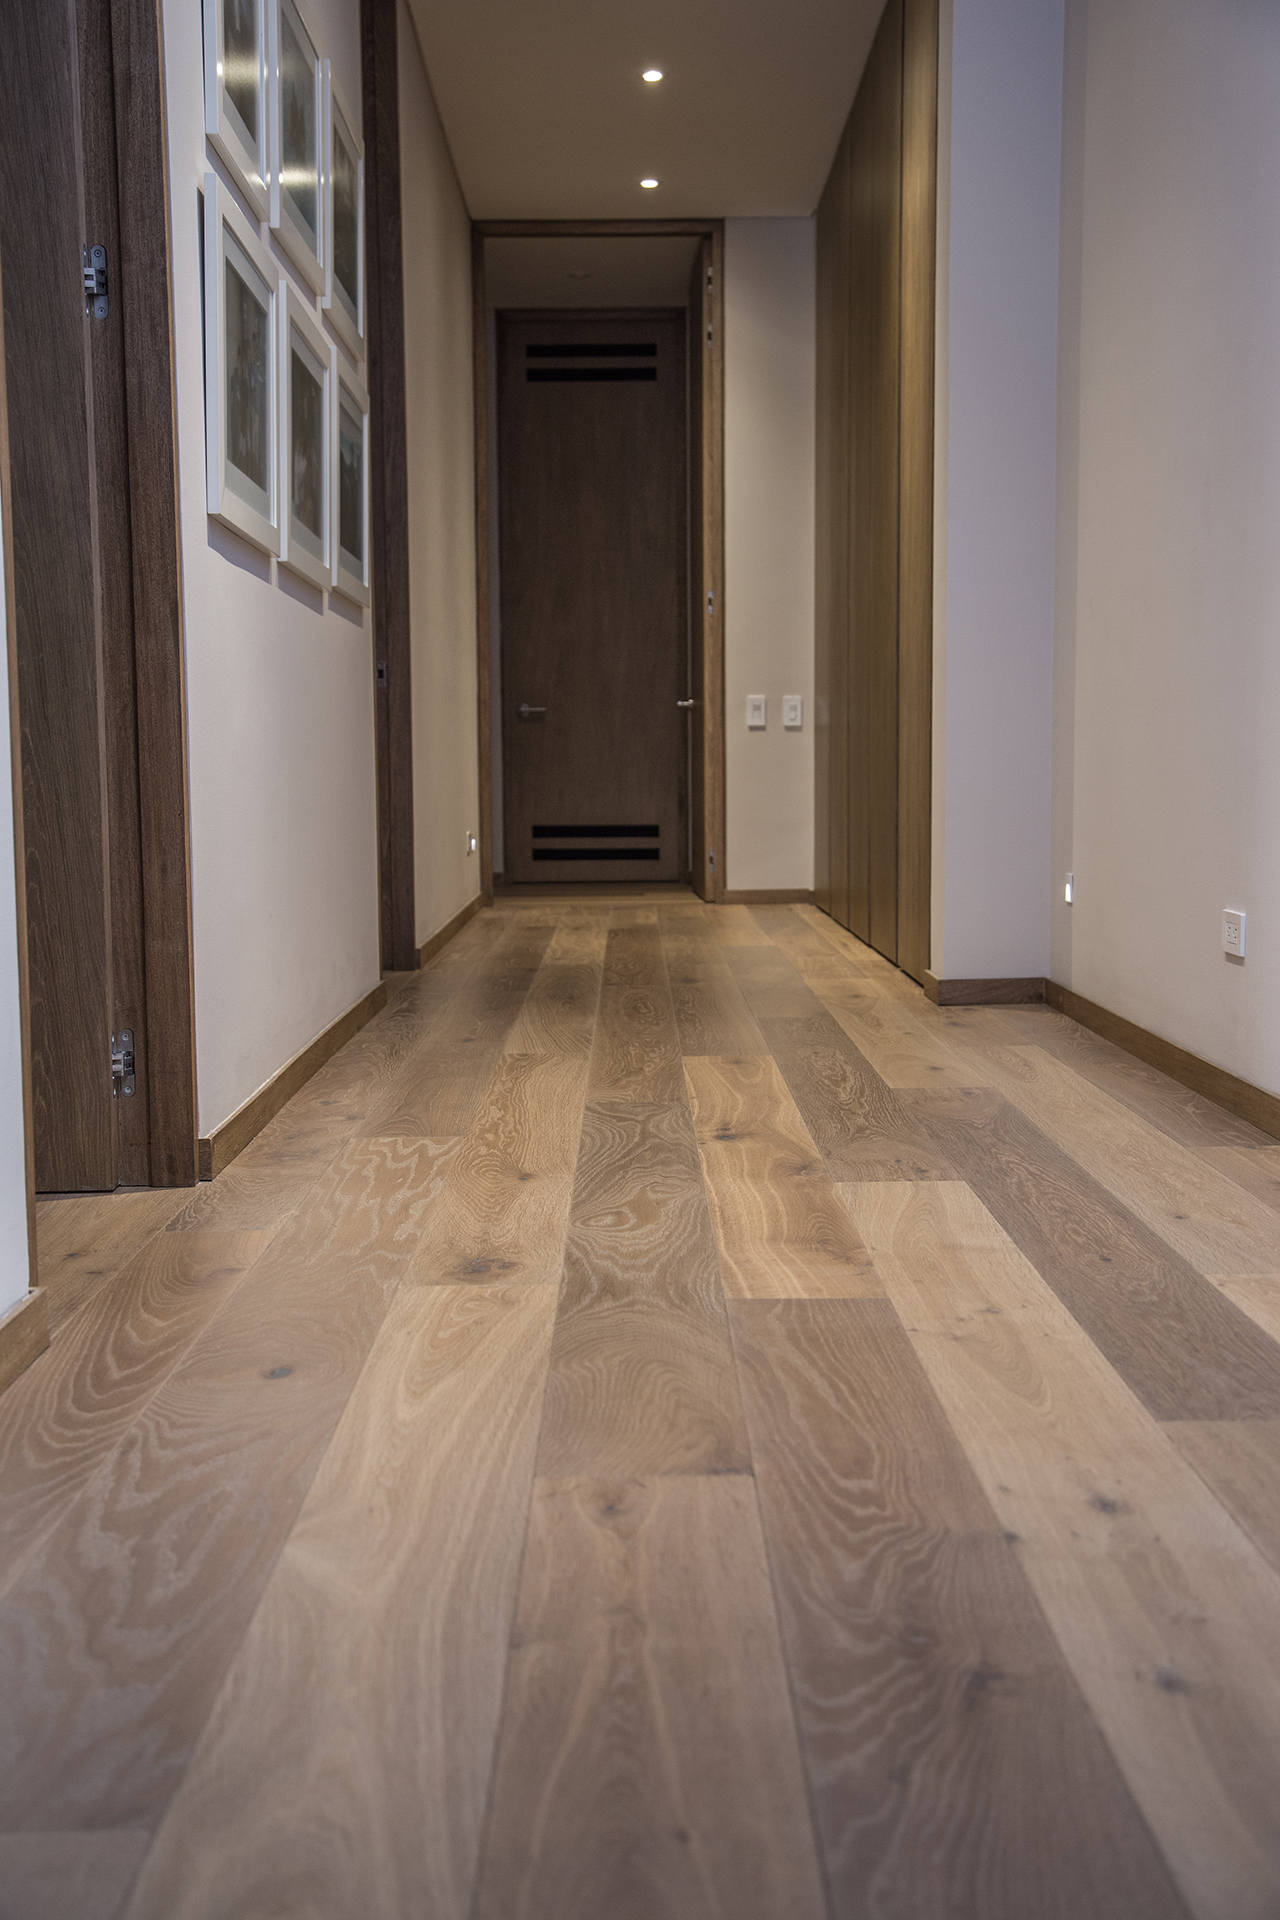 High Specification Engineered Wood Flooring - Tranquility